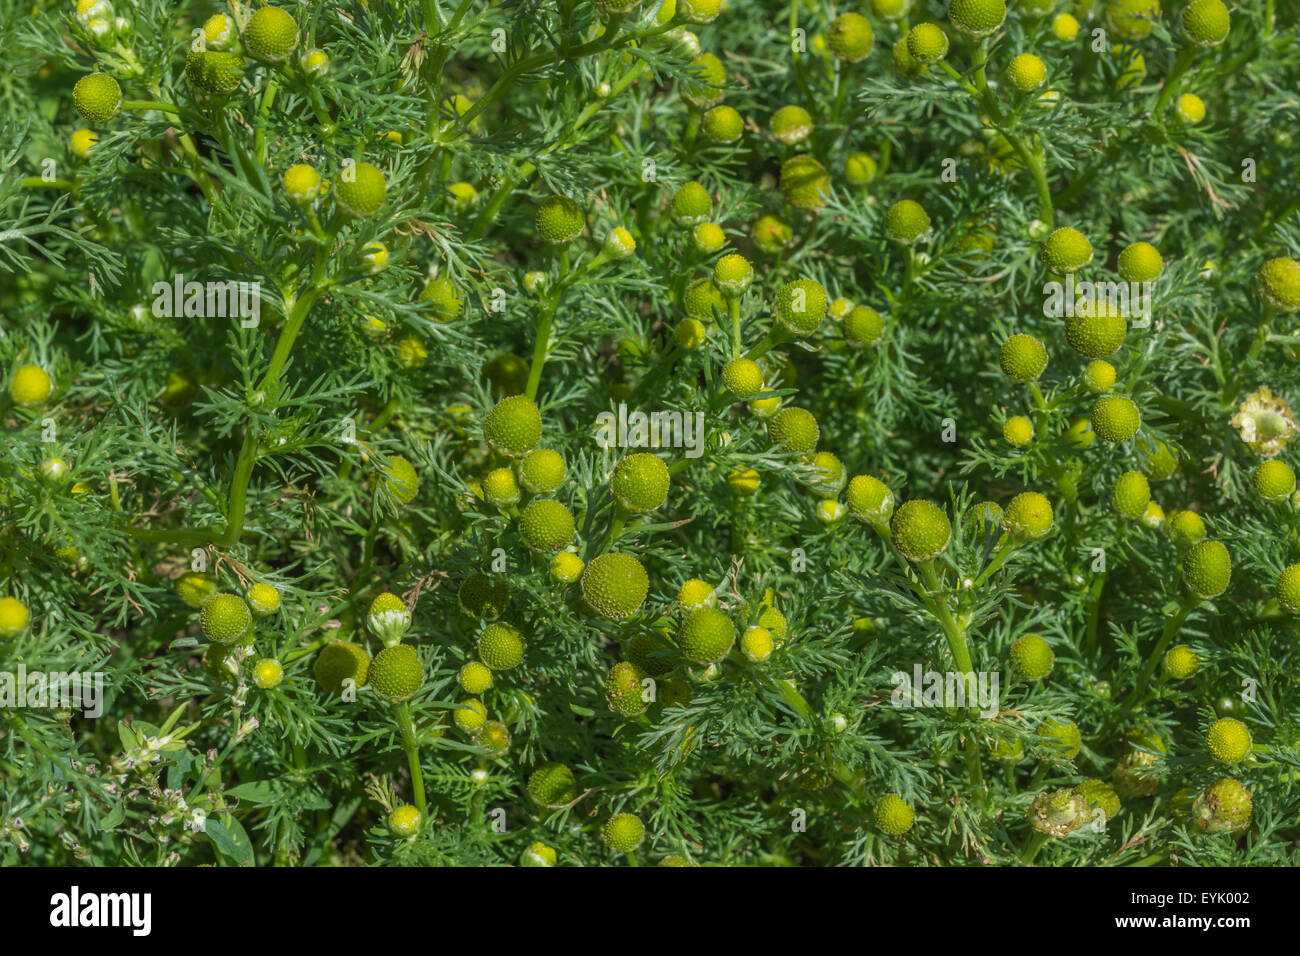 Pineapple Weed Stock Photos Pineapple Weed Stock Images Alamy